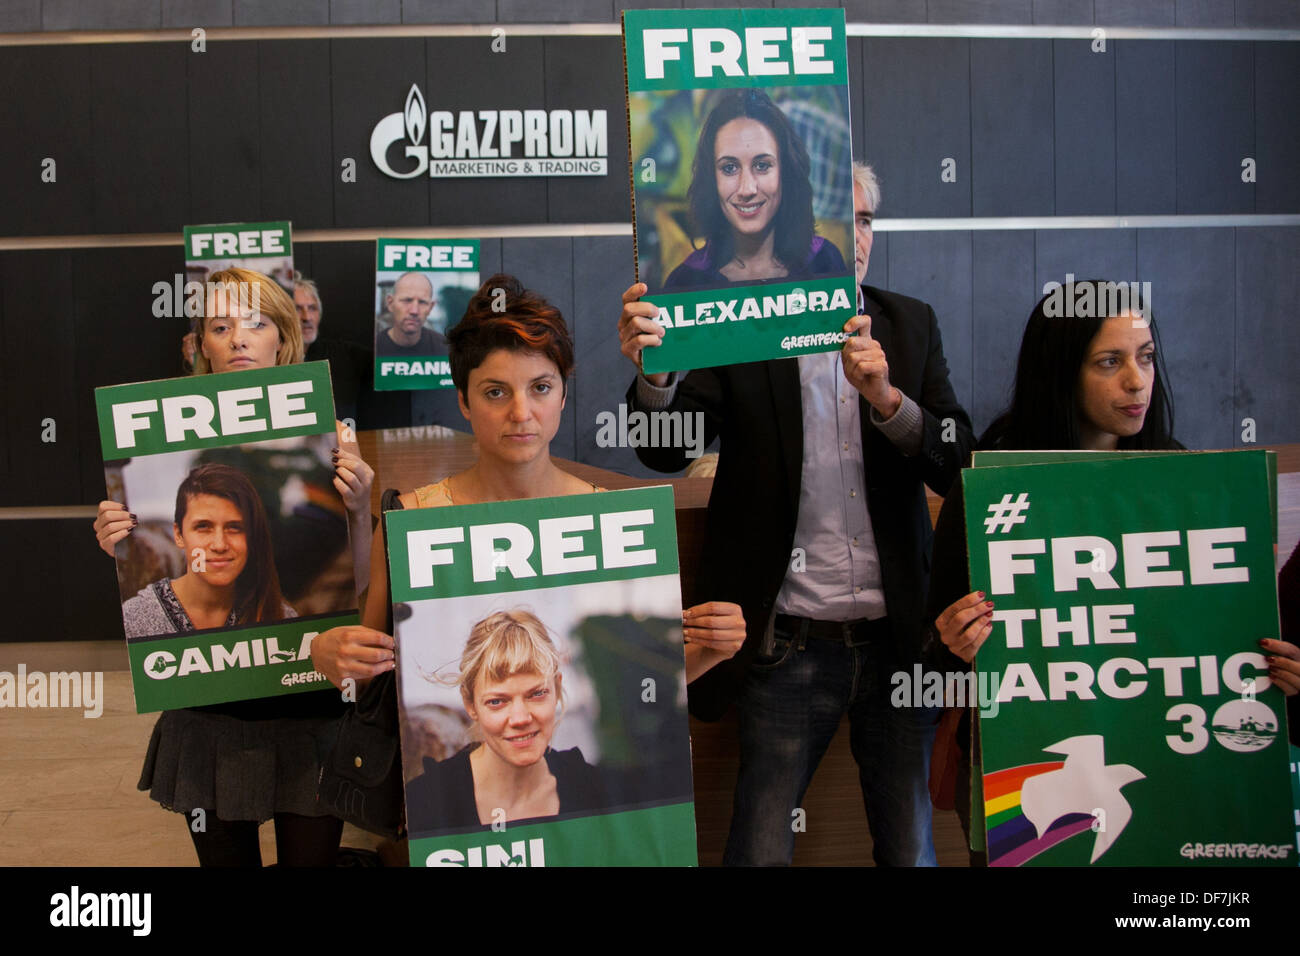 Detention of Greenpeace activists at the Gazprom office turned into a masquerade 05.09.2012 22